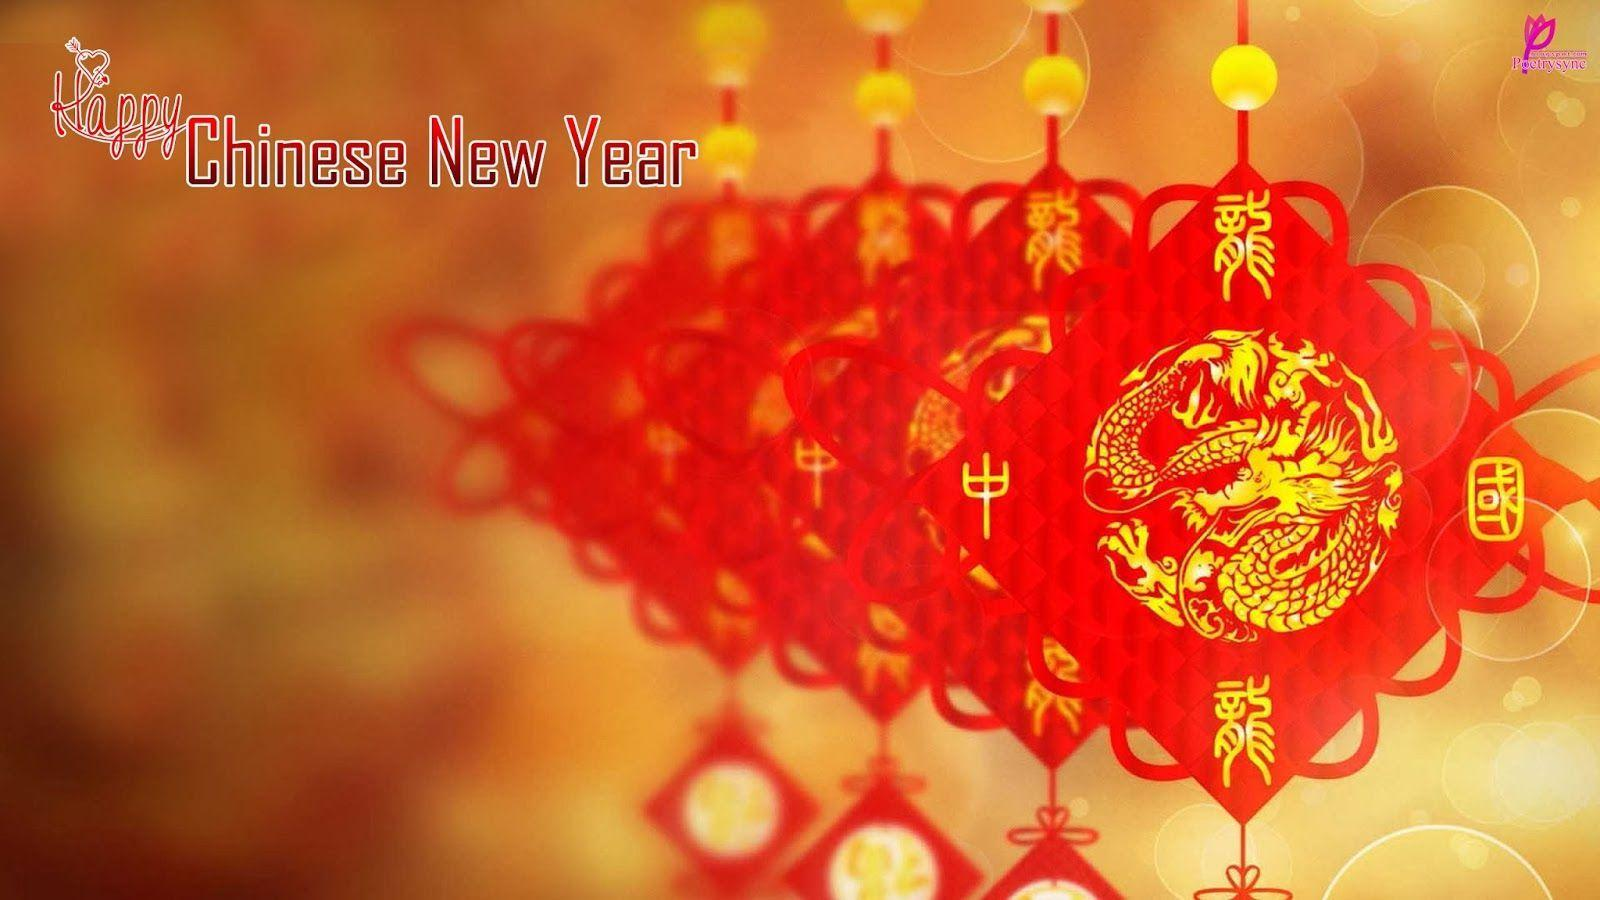 2014 Chinese New Year Wishes and Greetings Card Picture Happy